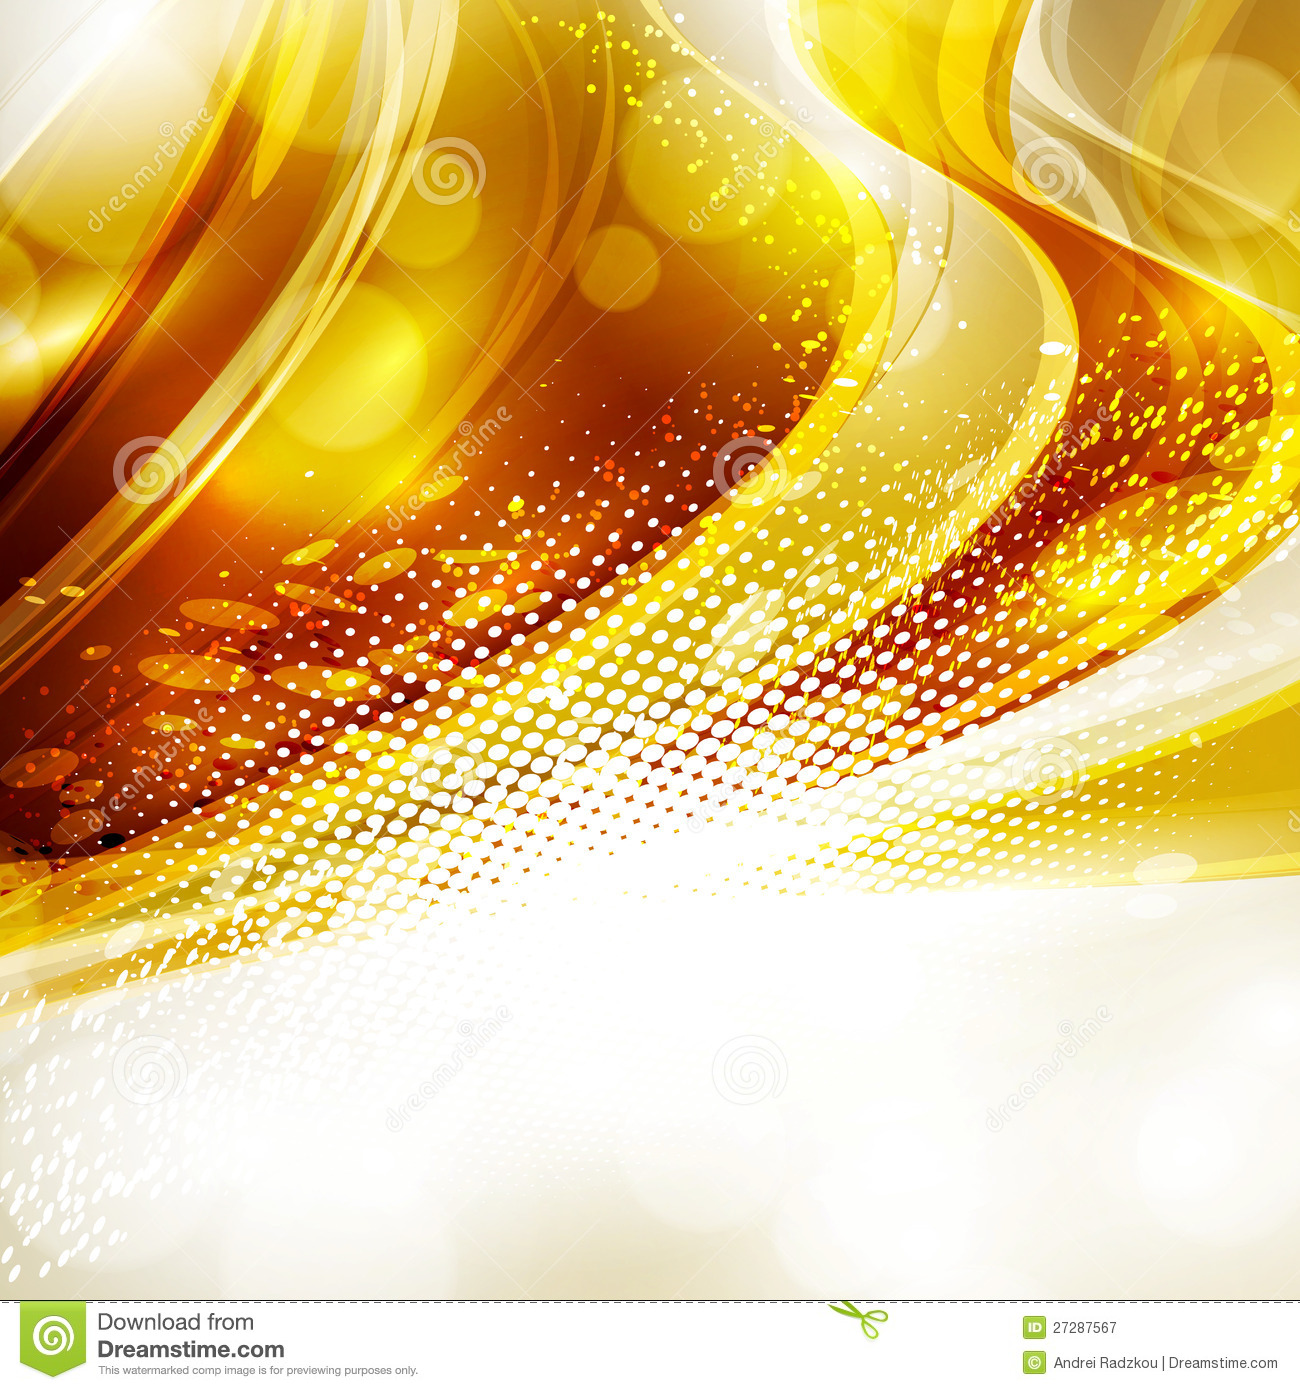 Gold and black grunge background